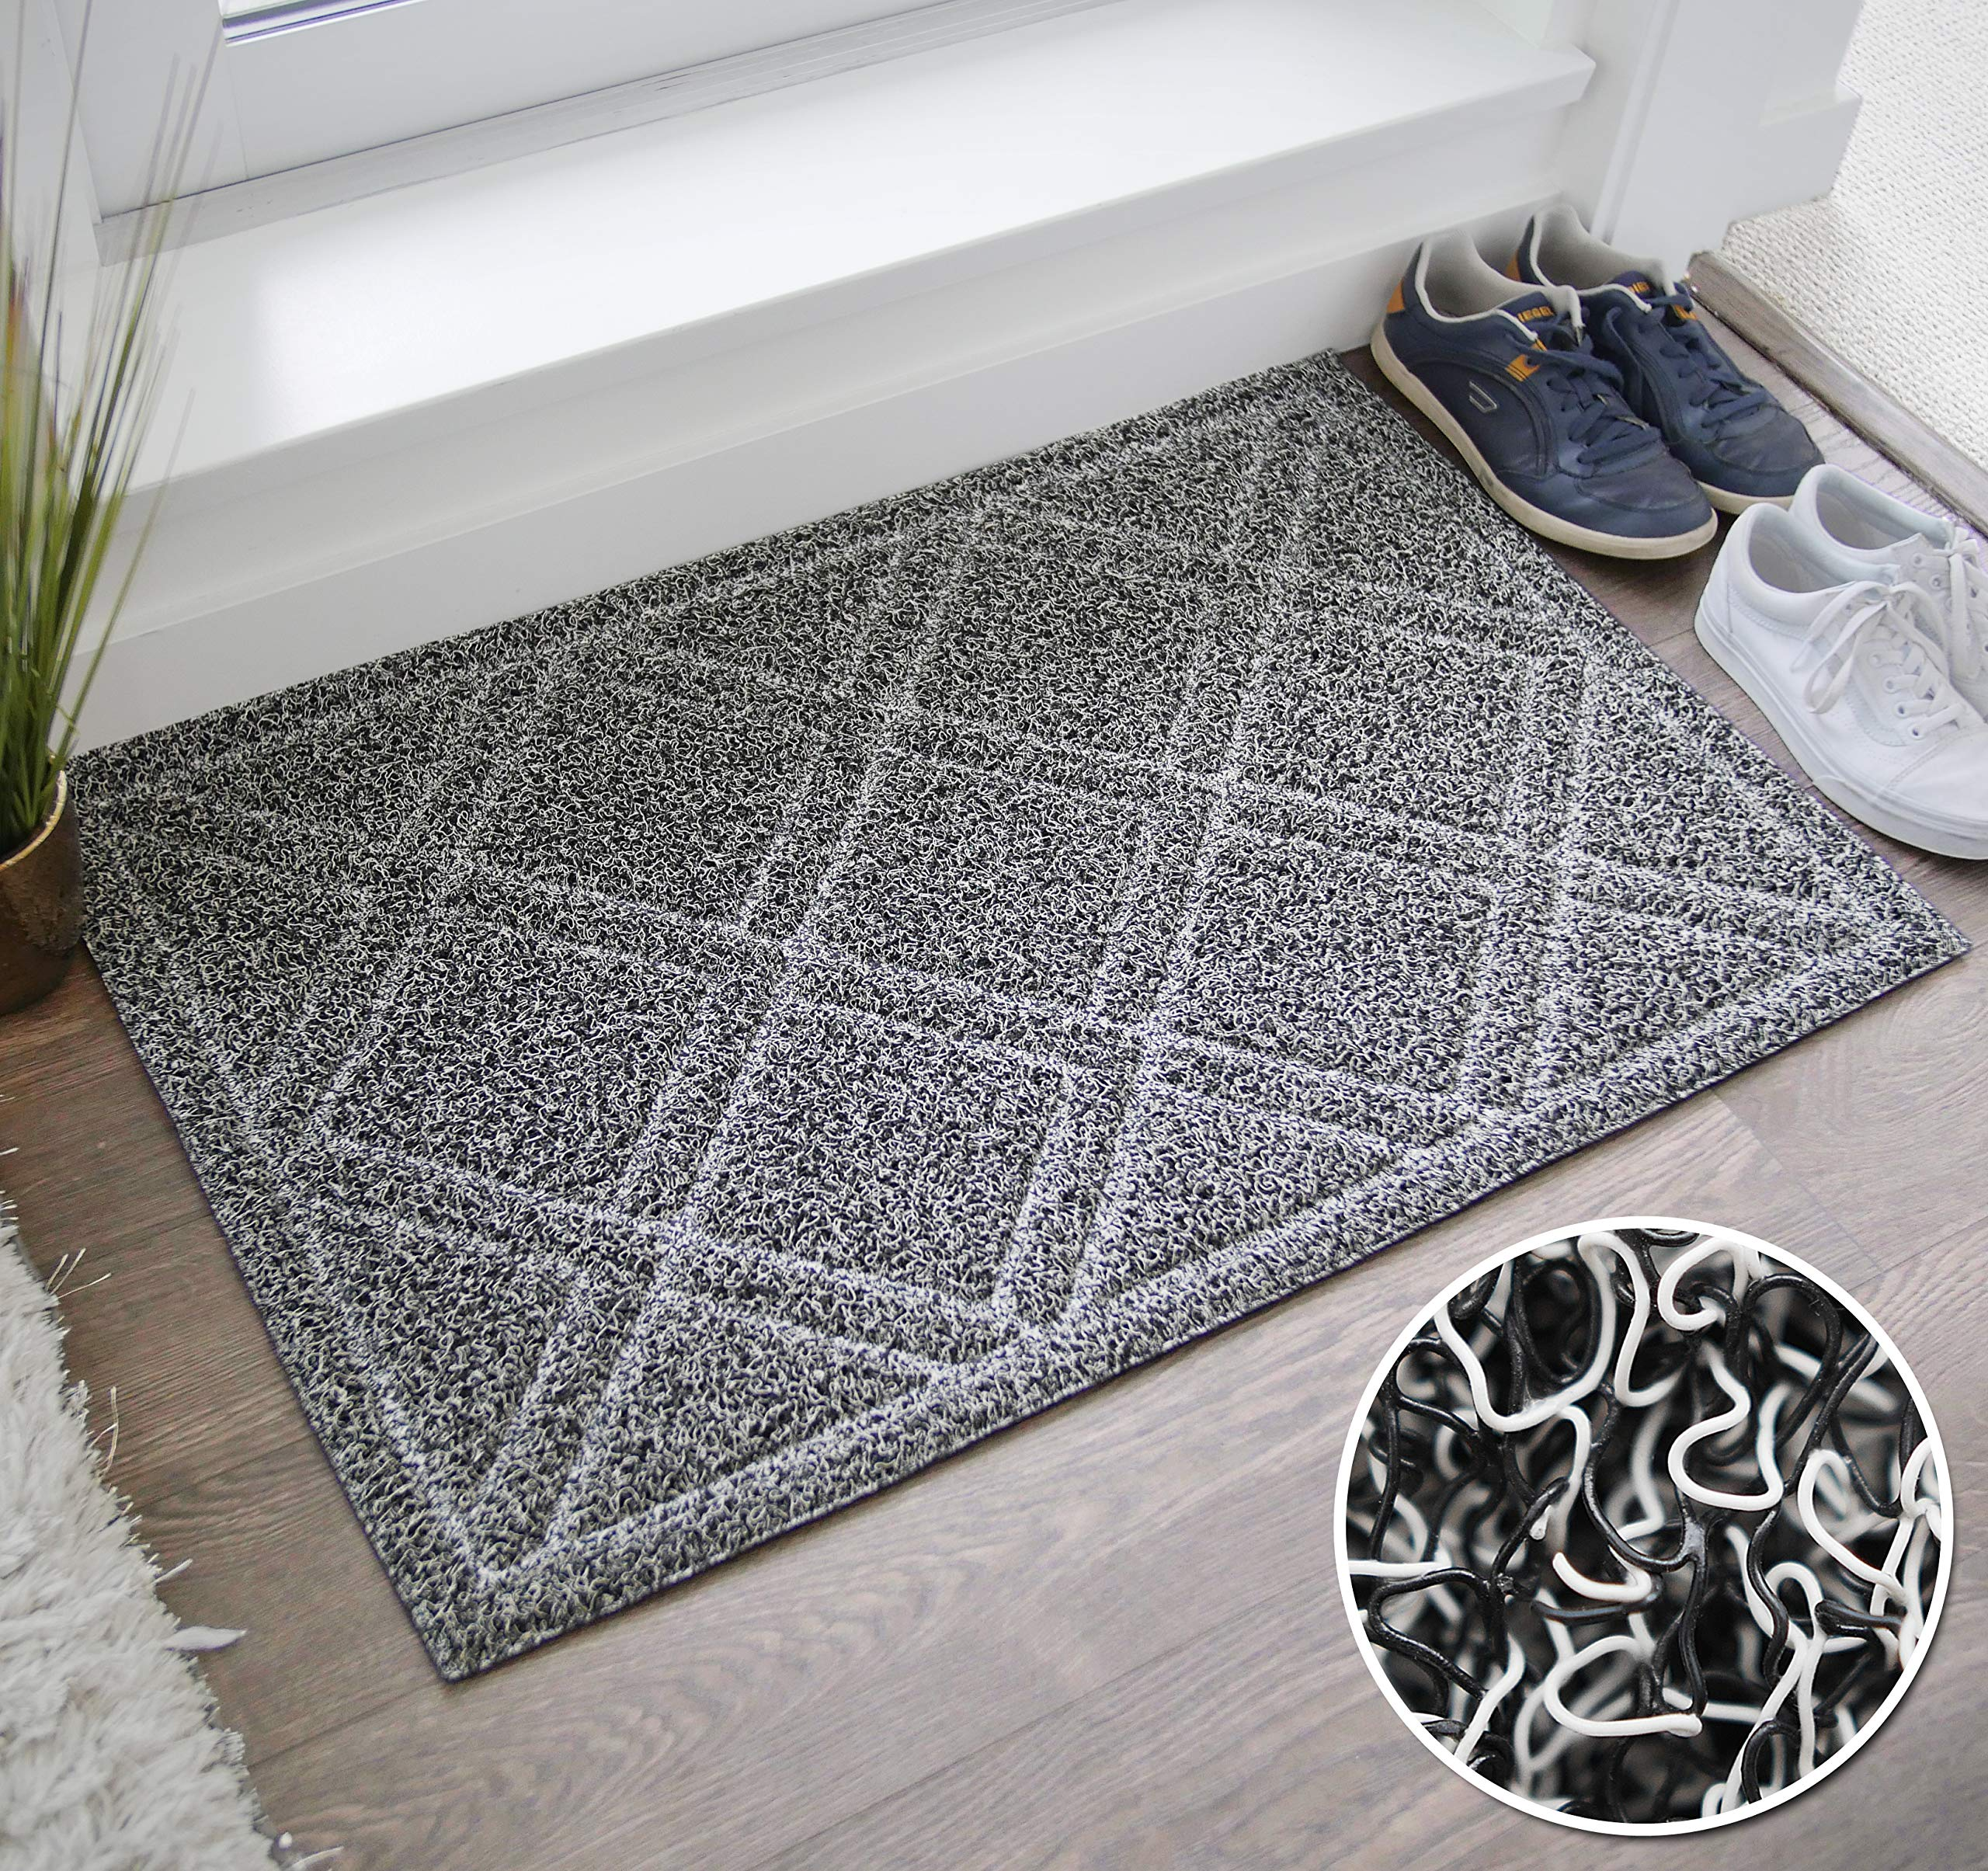 BrigHaus Large Indoor/Outdoor Doormat | 24 x 35 | Non Slip Heavy Duty Front Entrance Door Mat Rug, Outside Patio, Inside Entry Way, Catches Dirt Dust Snow & Mud - Black/White